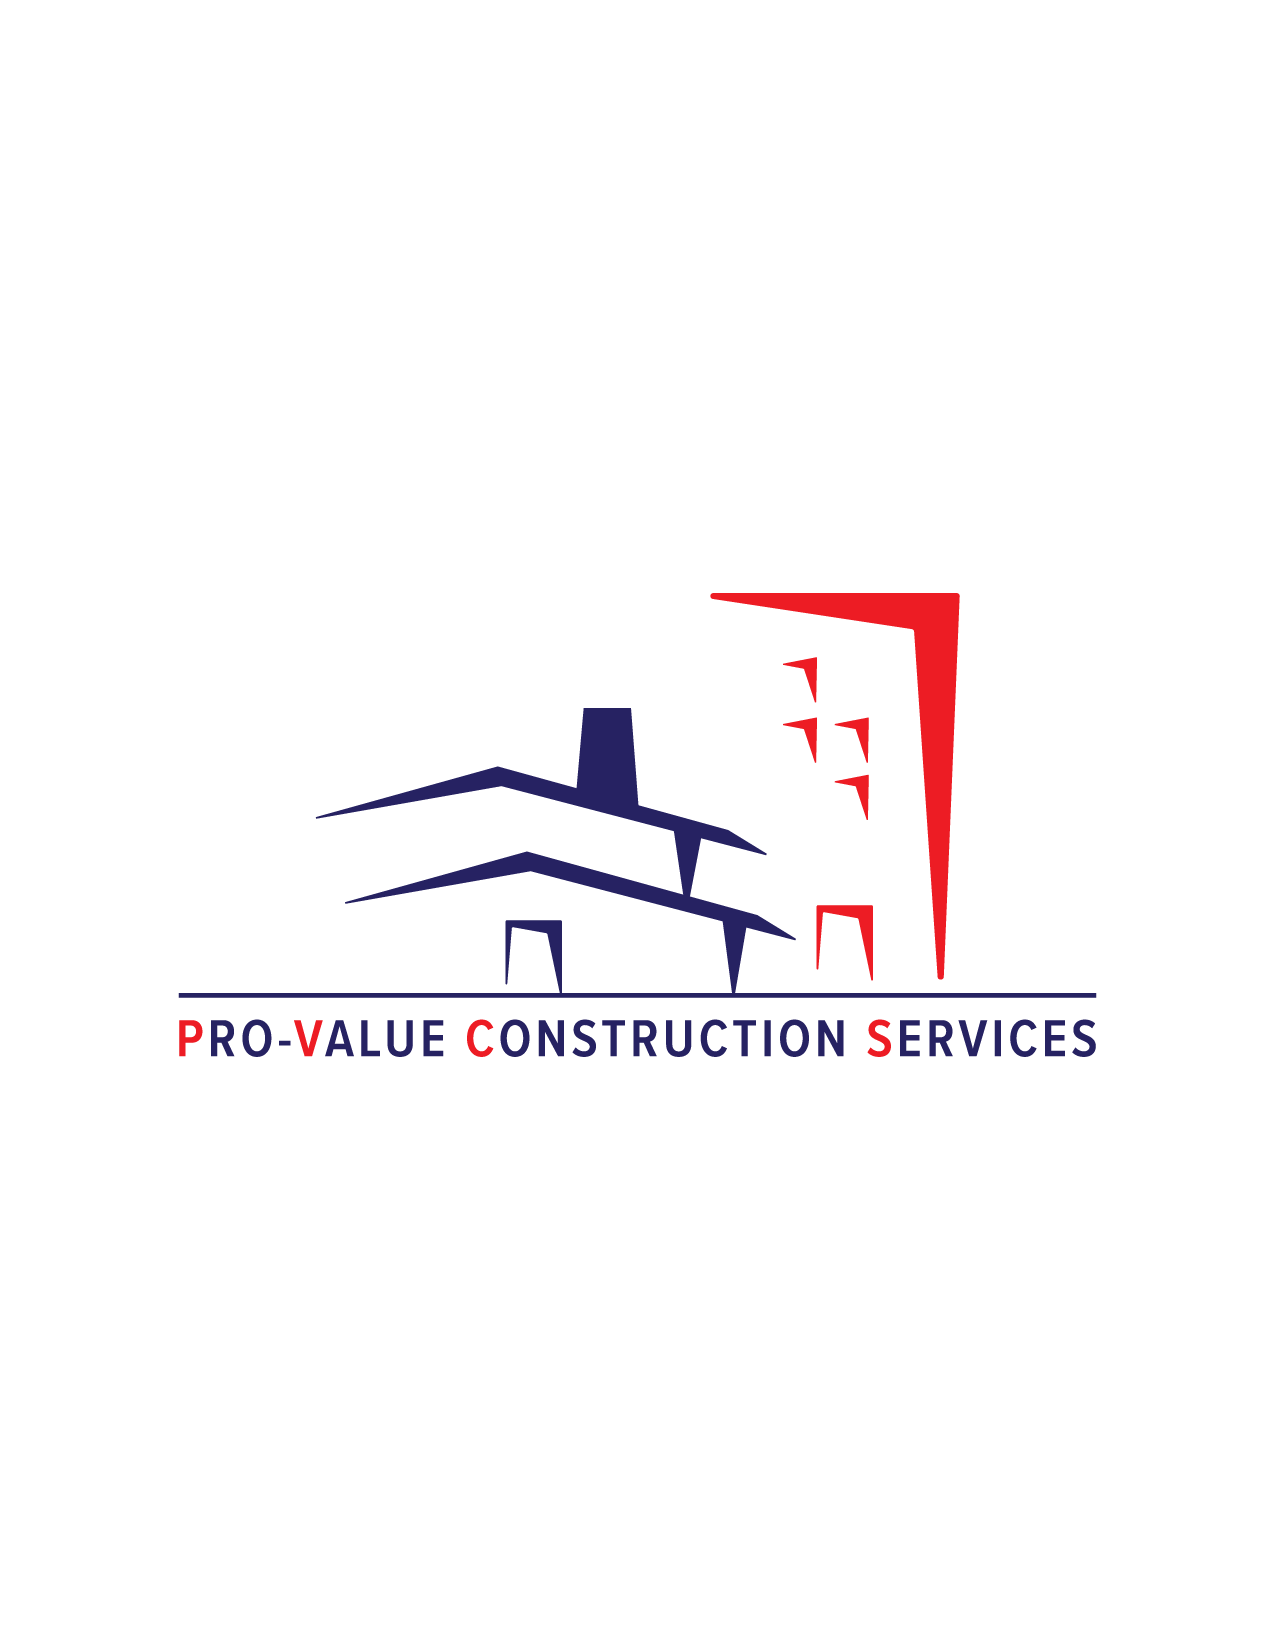 Pro Value Construction Services Inc We Are A Top Construction Company